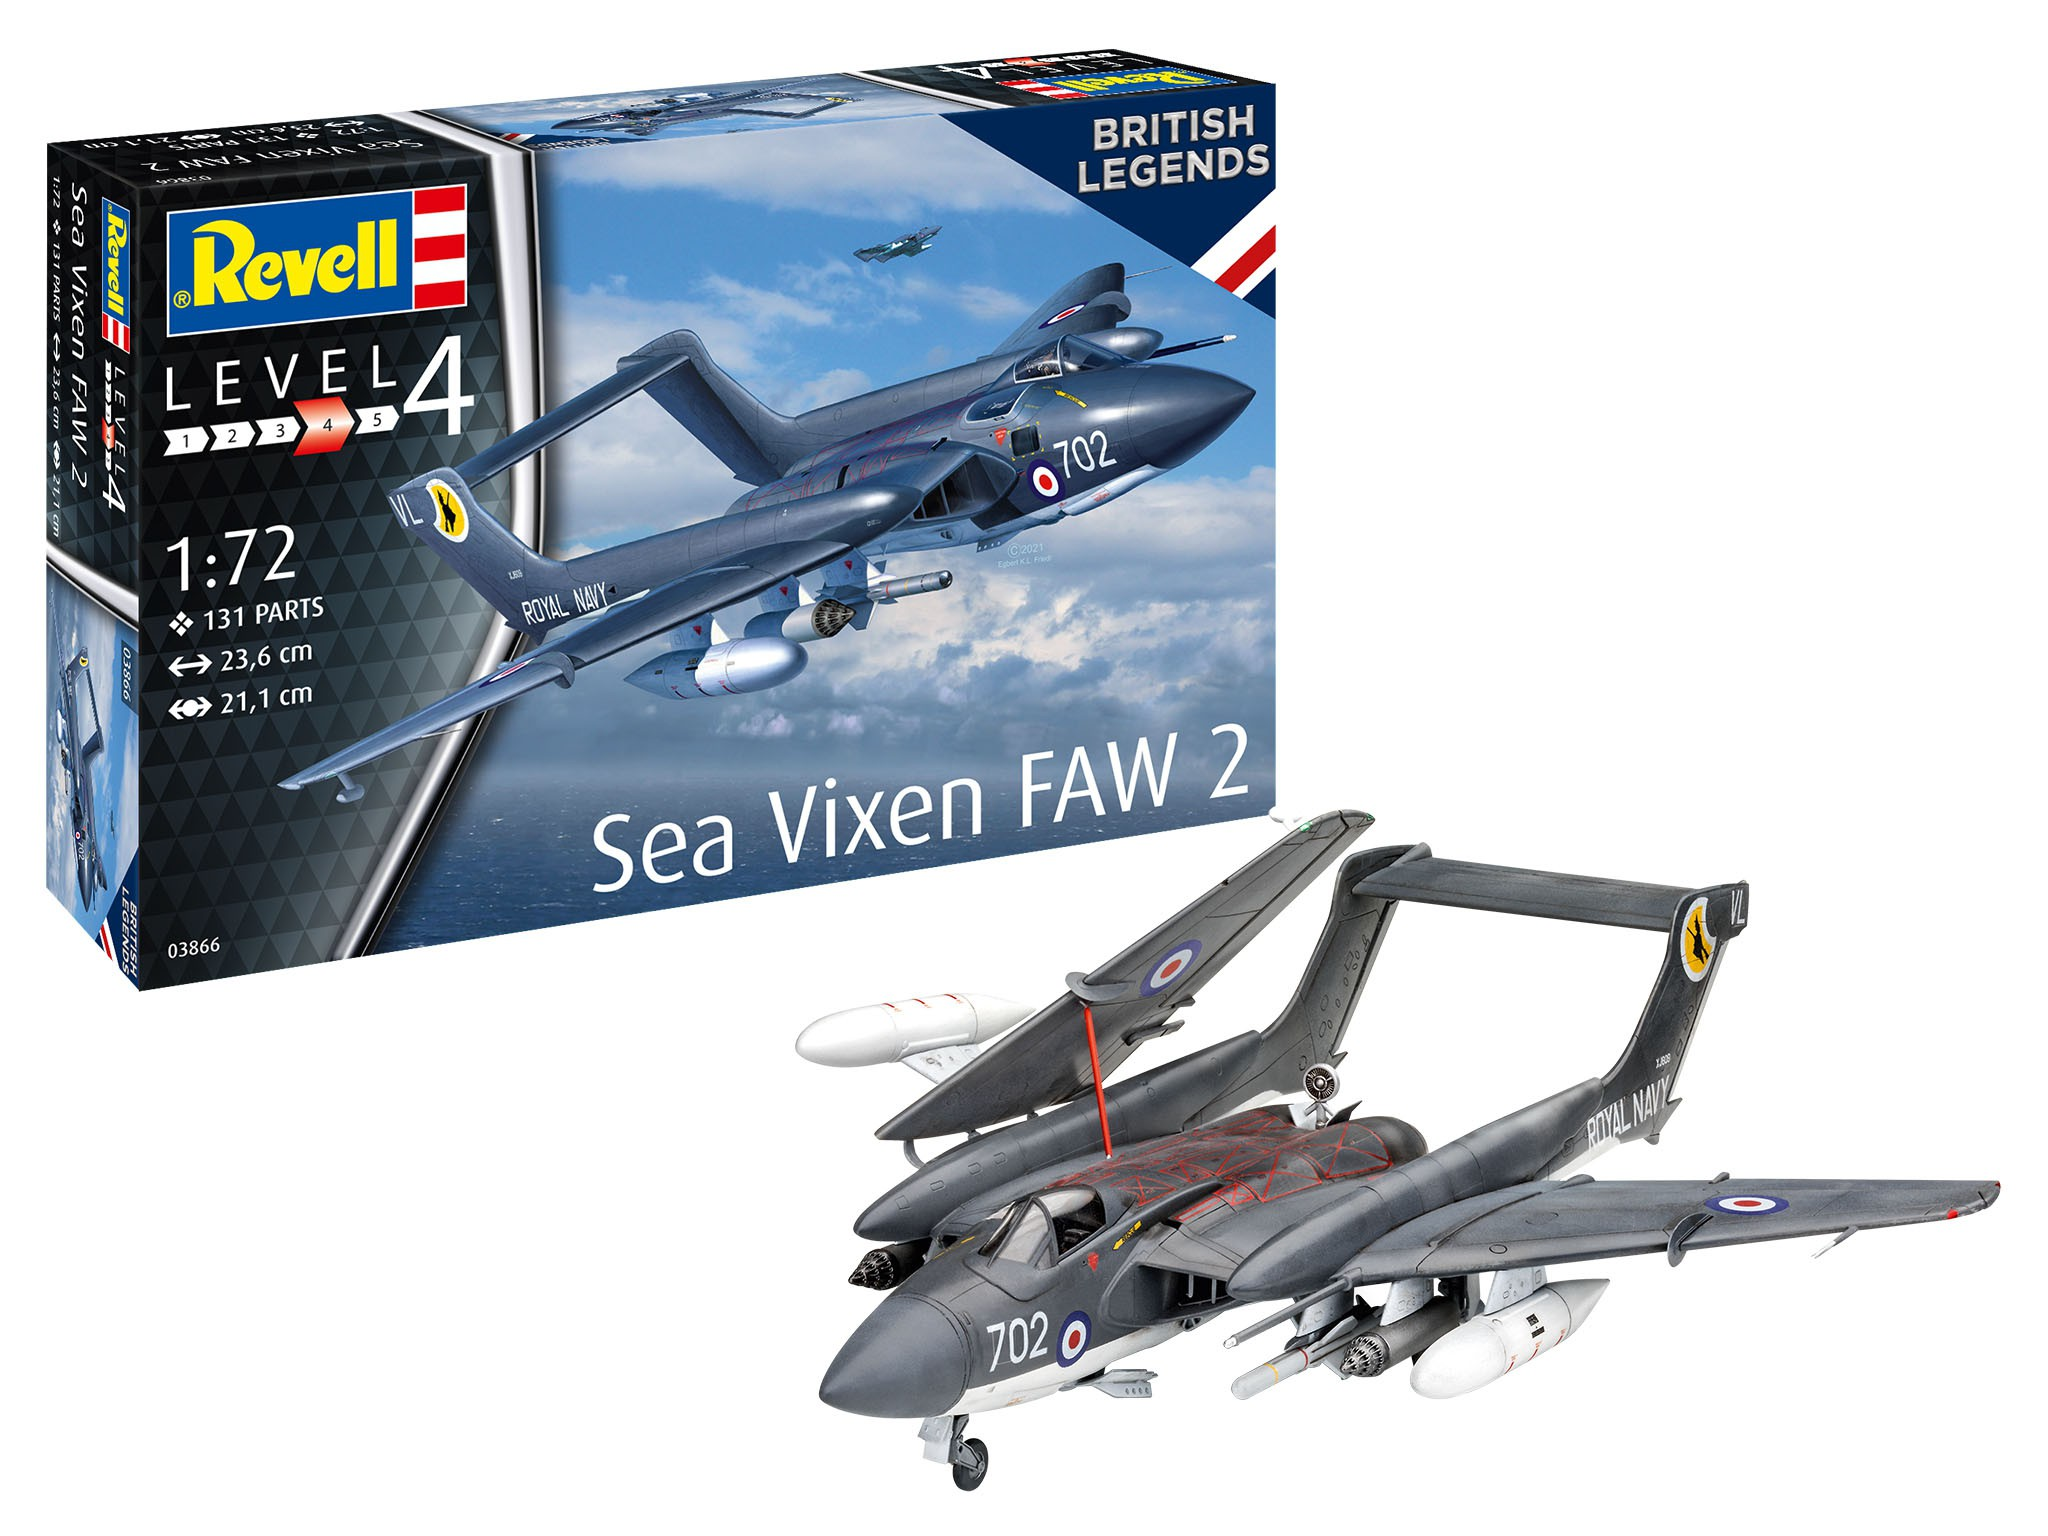 Sea Vixen FAW 2 70th Anniversary